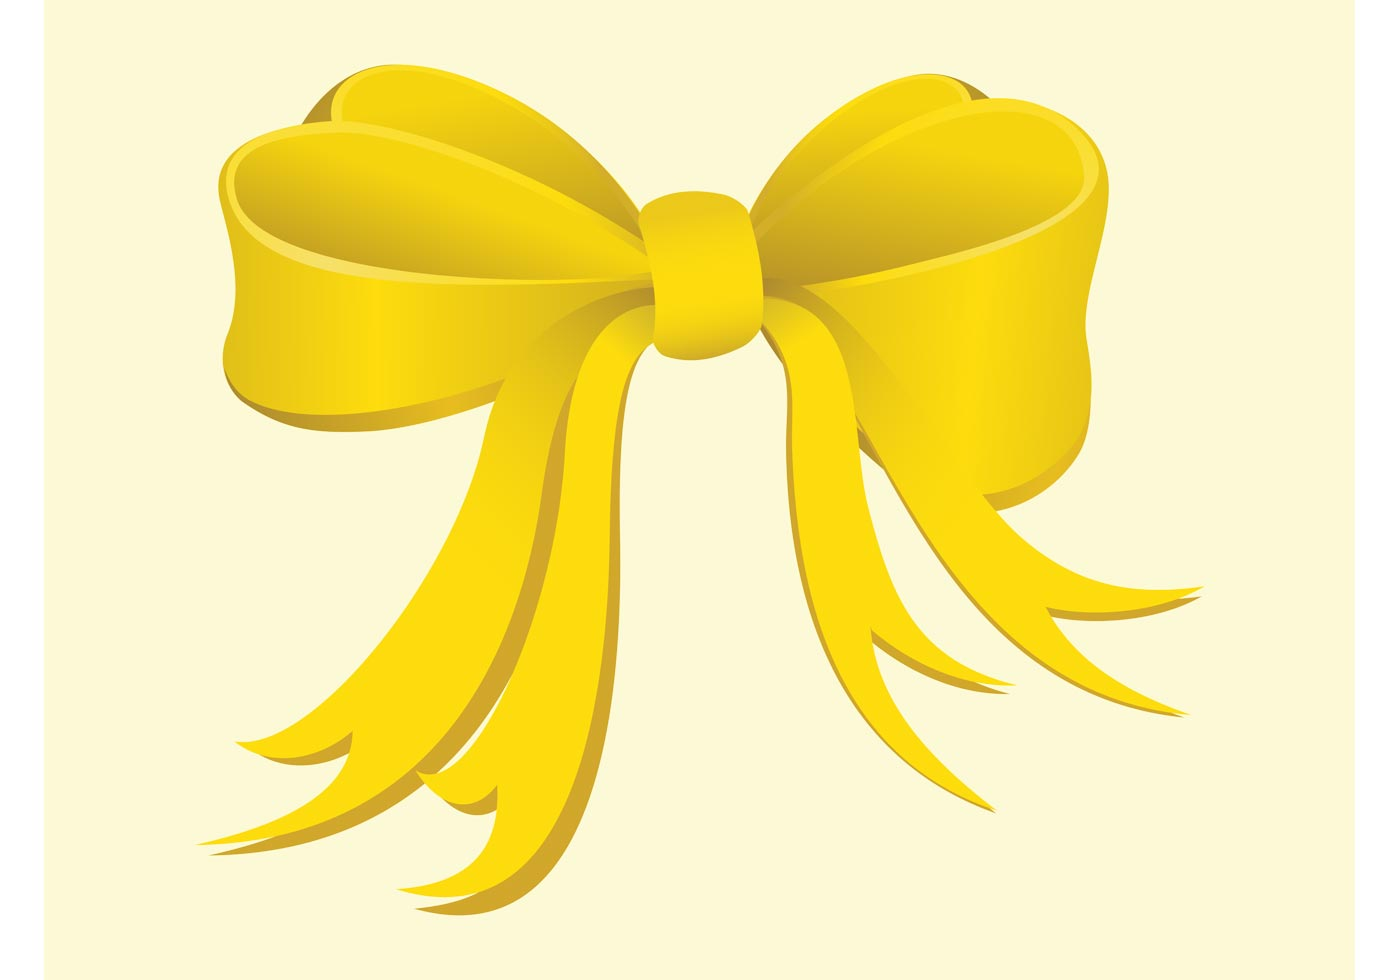 Cute Easter Egg Wallpaper Yellow Bow Free Vector Art 3903 Free Downloads